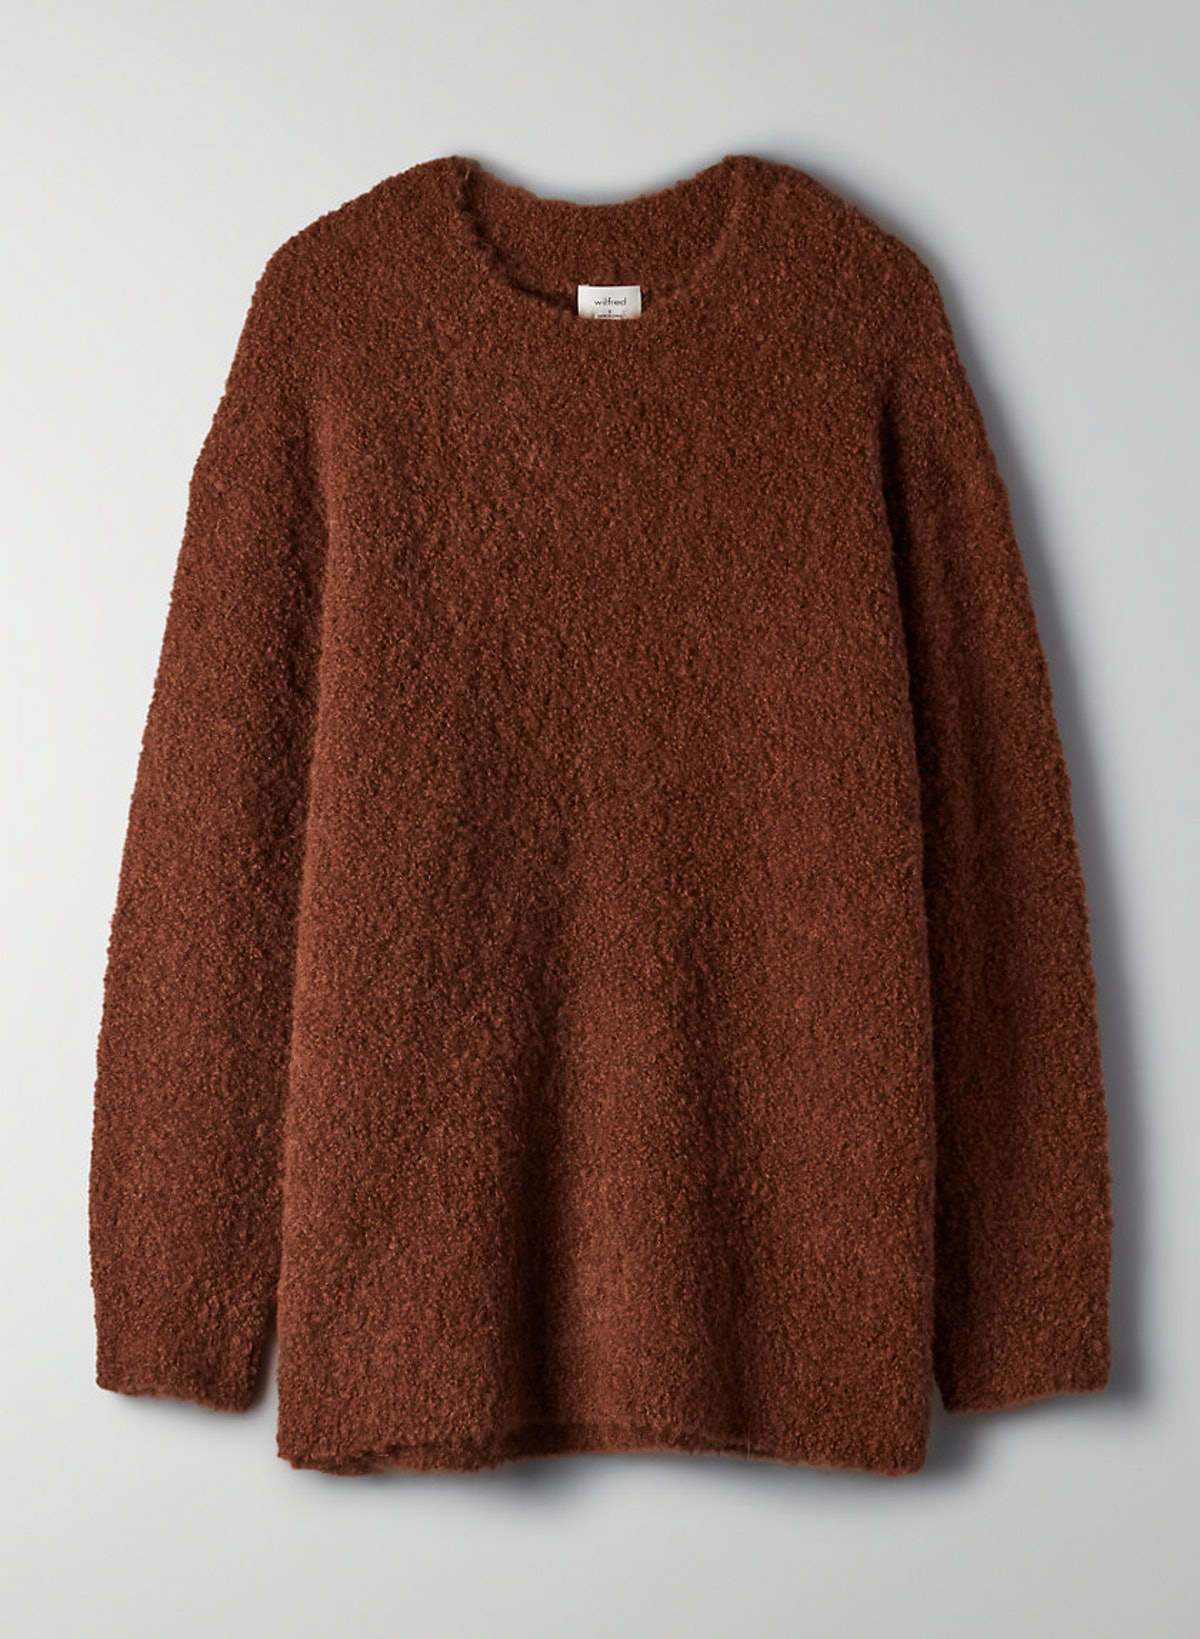 Seissan Sweater